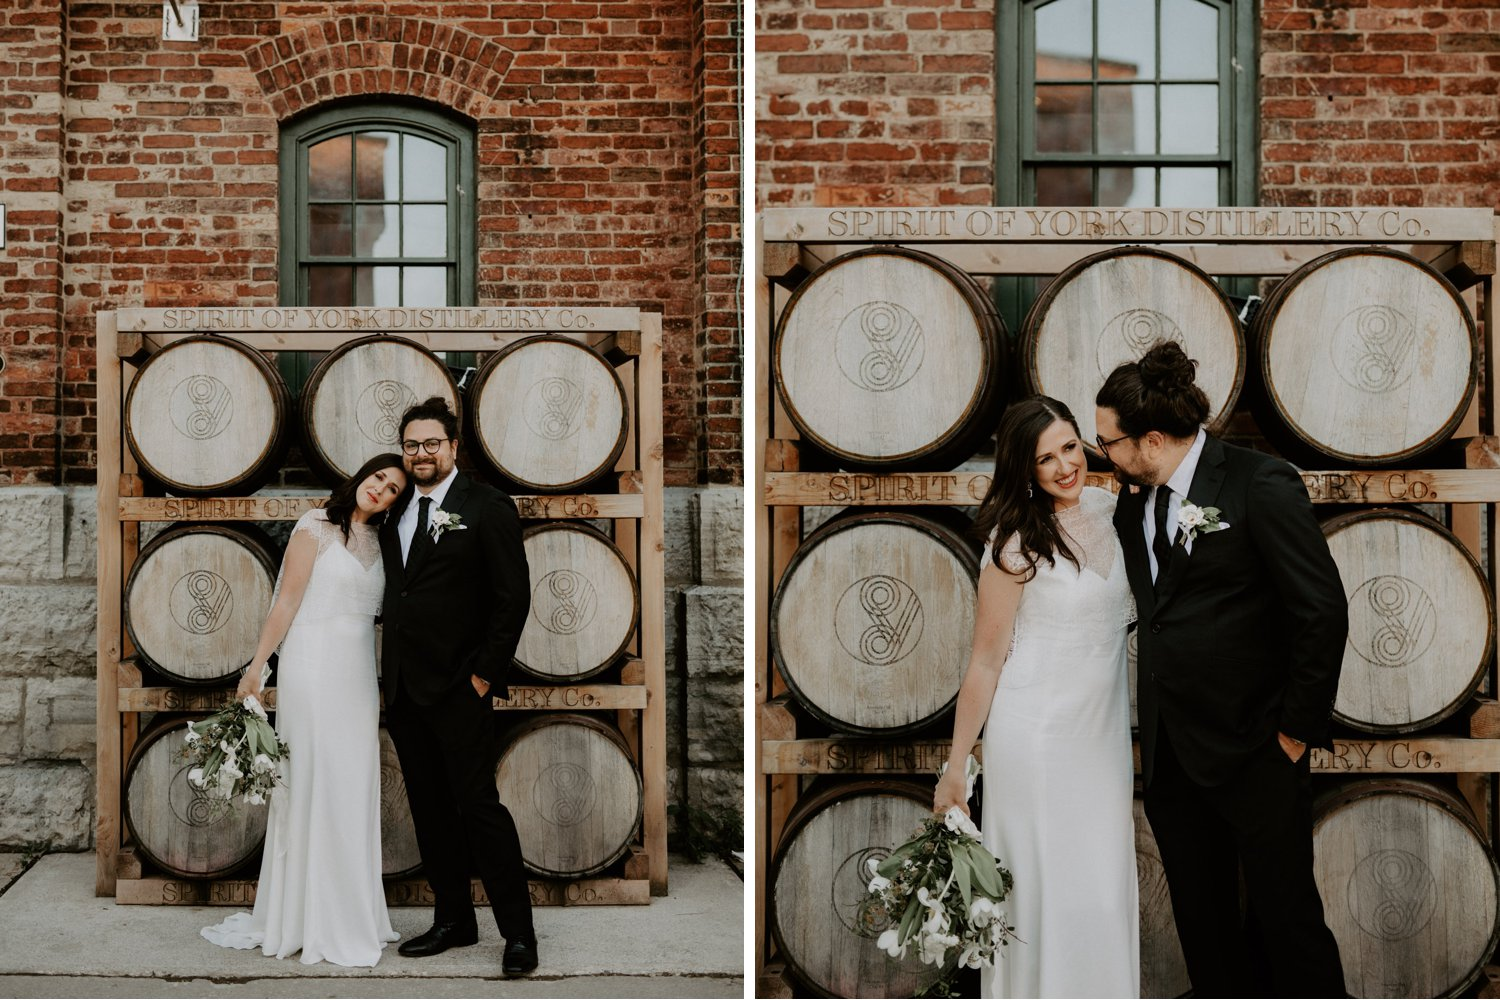 Archeo Wedding - Bride and groom brick wall and barrels portrait - Distillery District Toronto